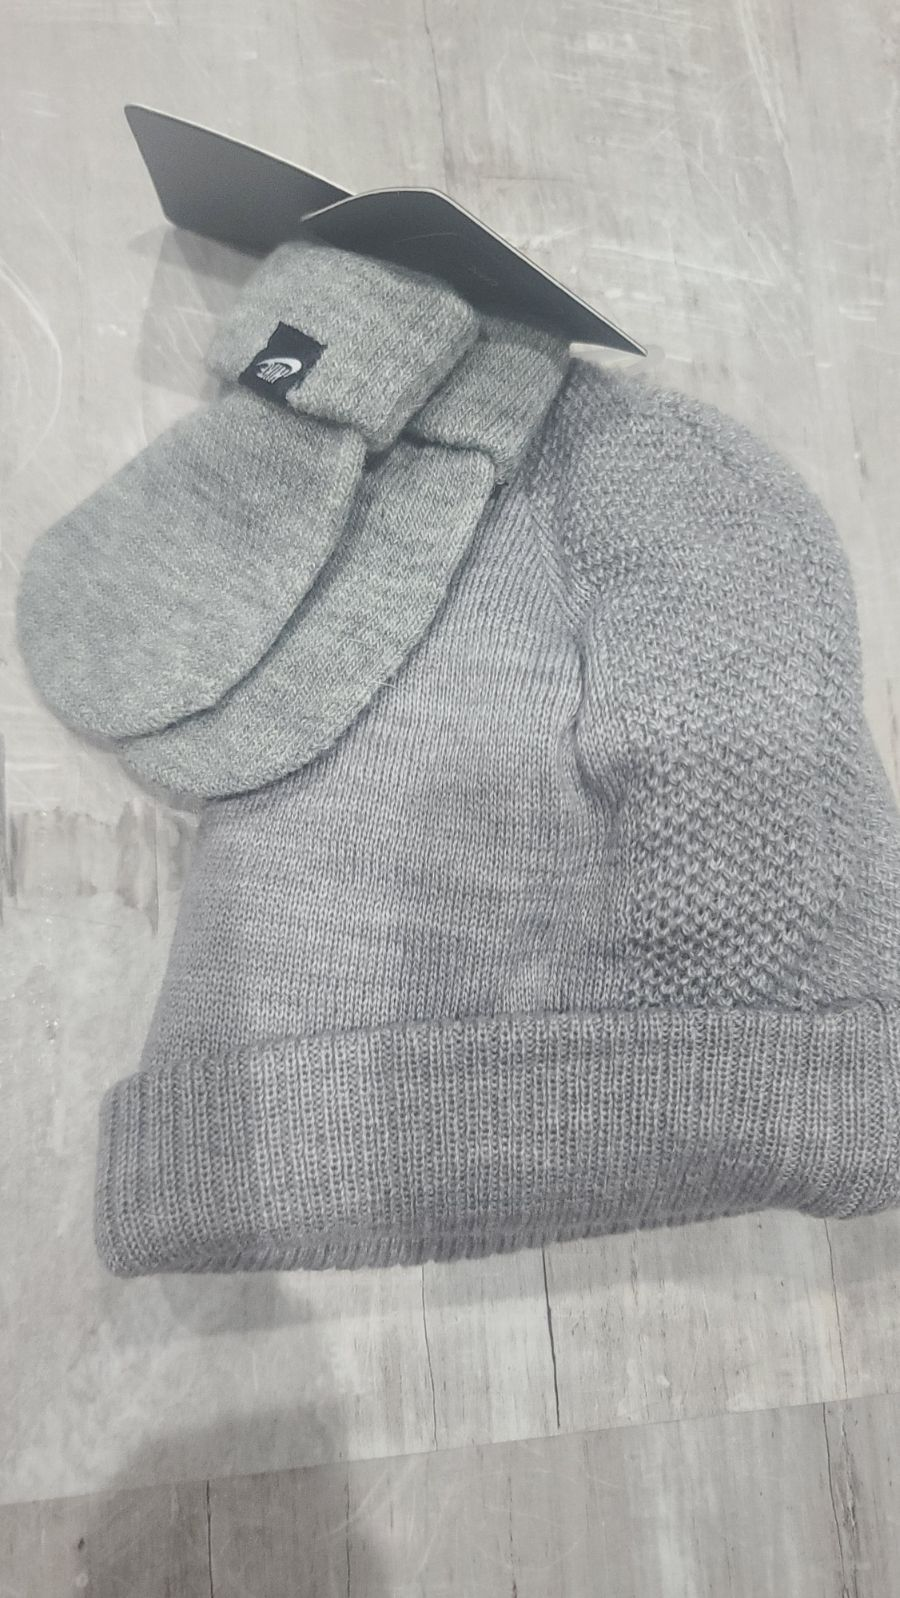 Infant Nike knit hat and mittens